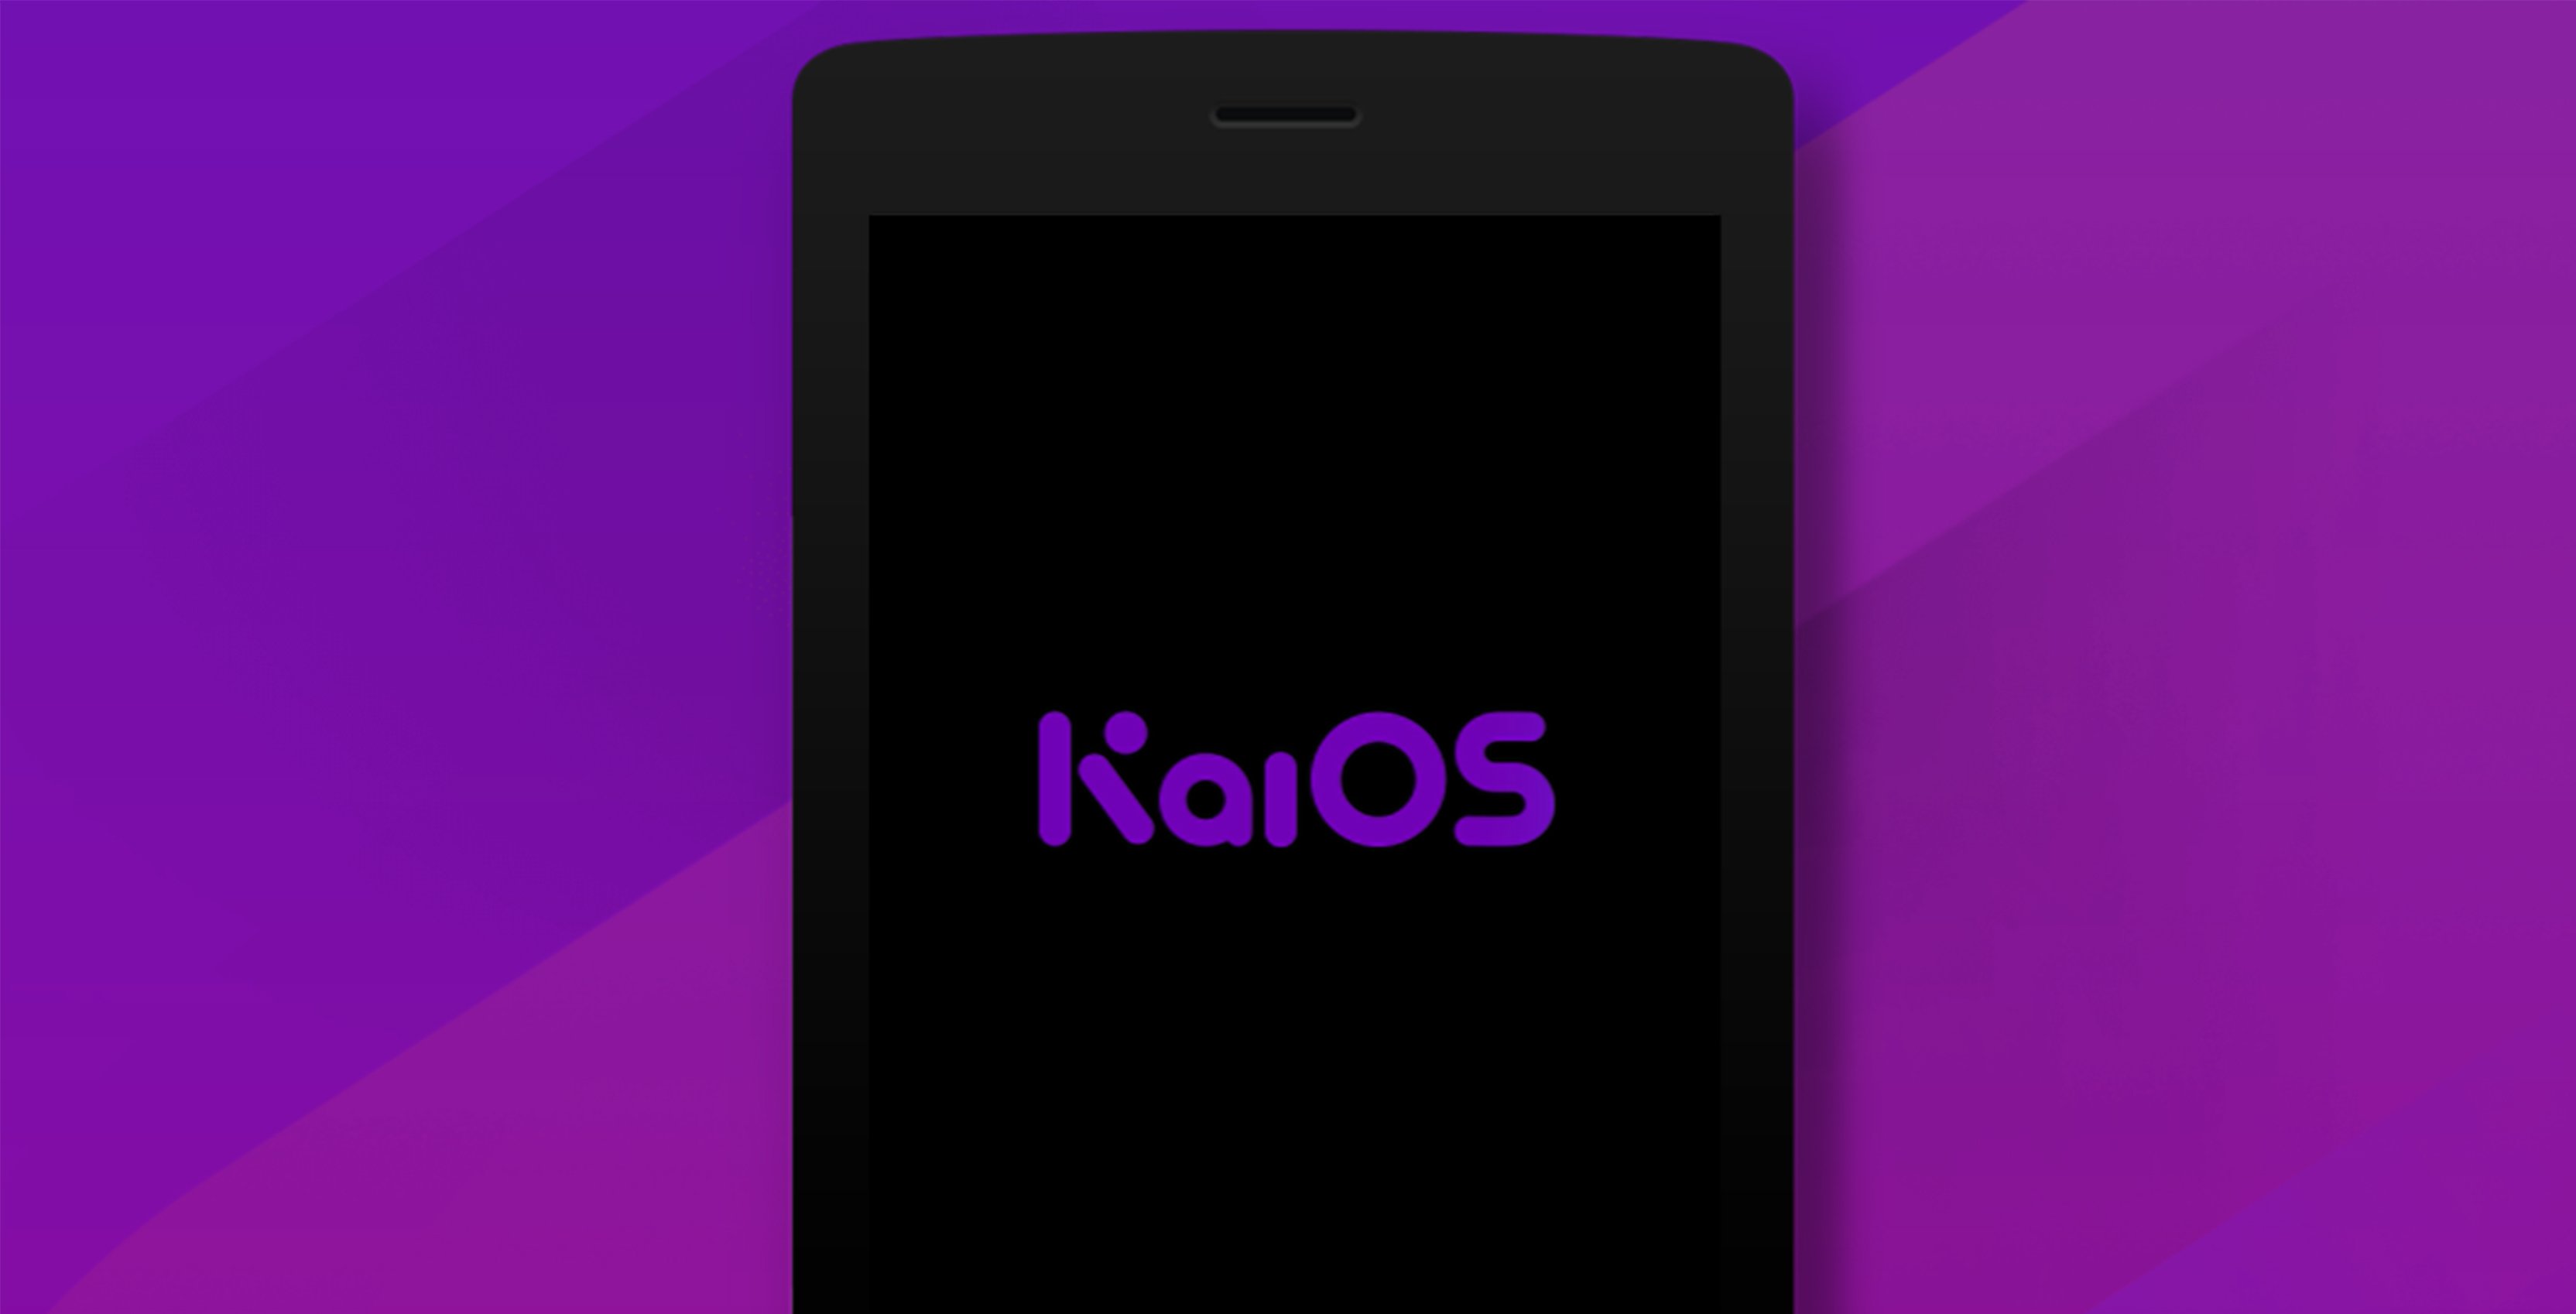 Google invests $22 million in feature phone operating system KaiOS